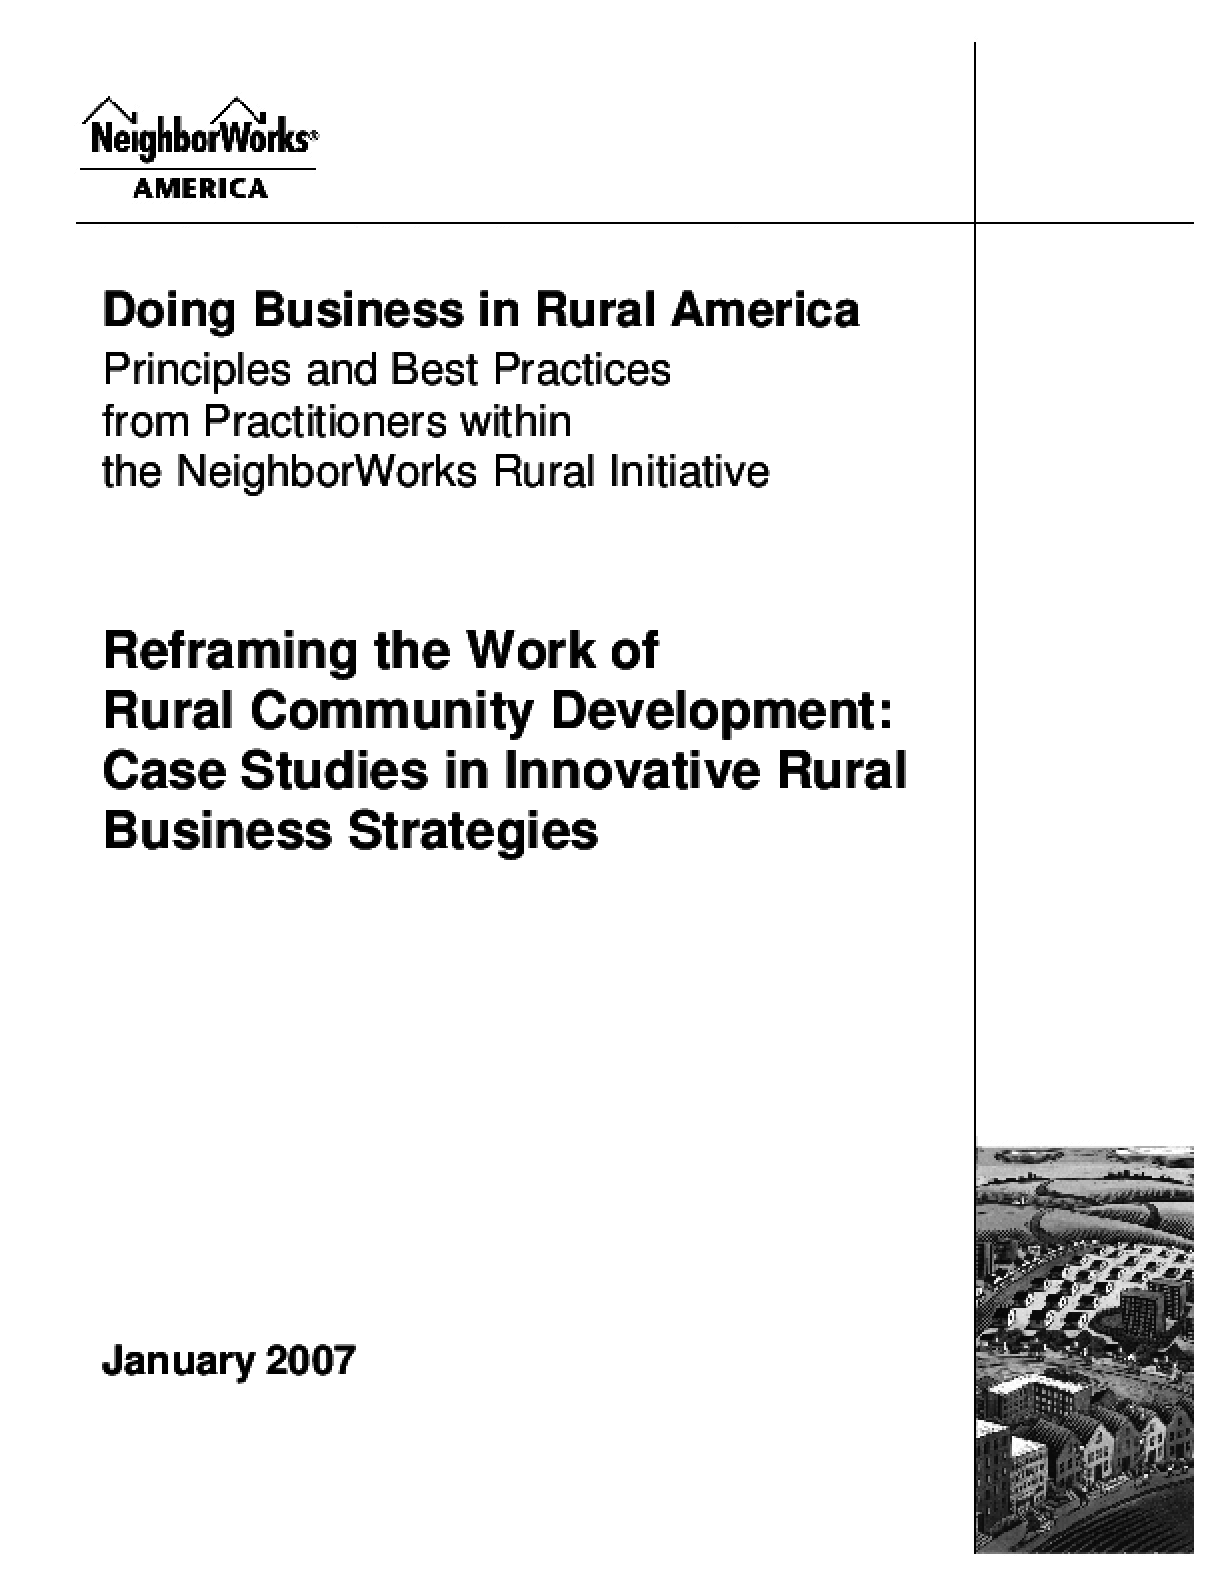 Reframing the Work of Rural Community Development: Case Studies in Innovative Rural Business Strategies